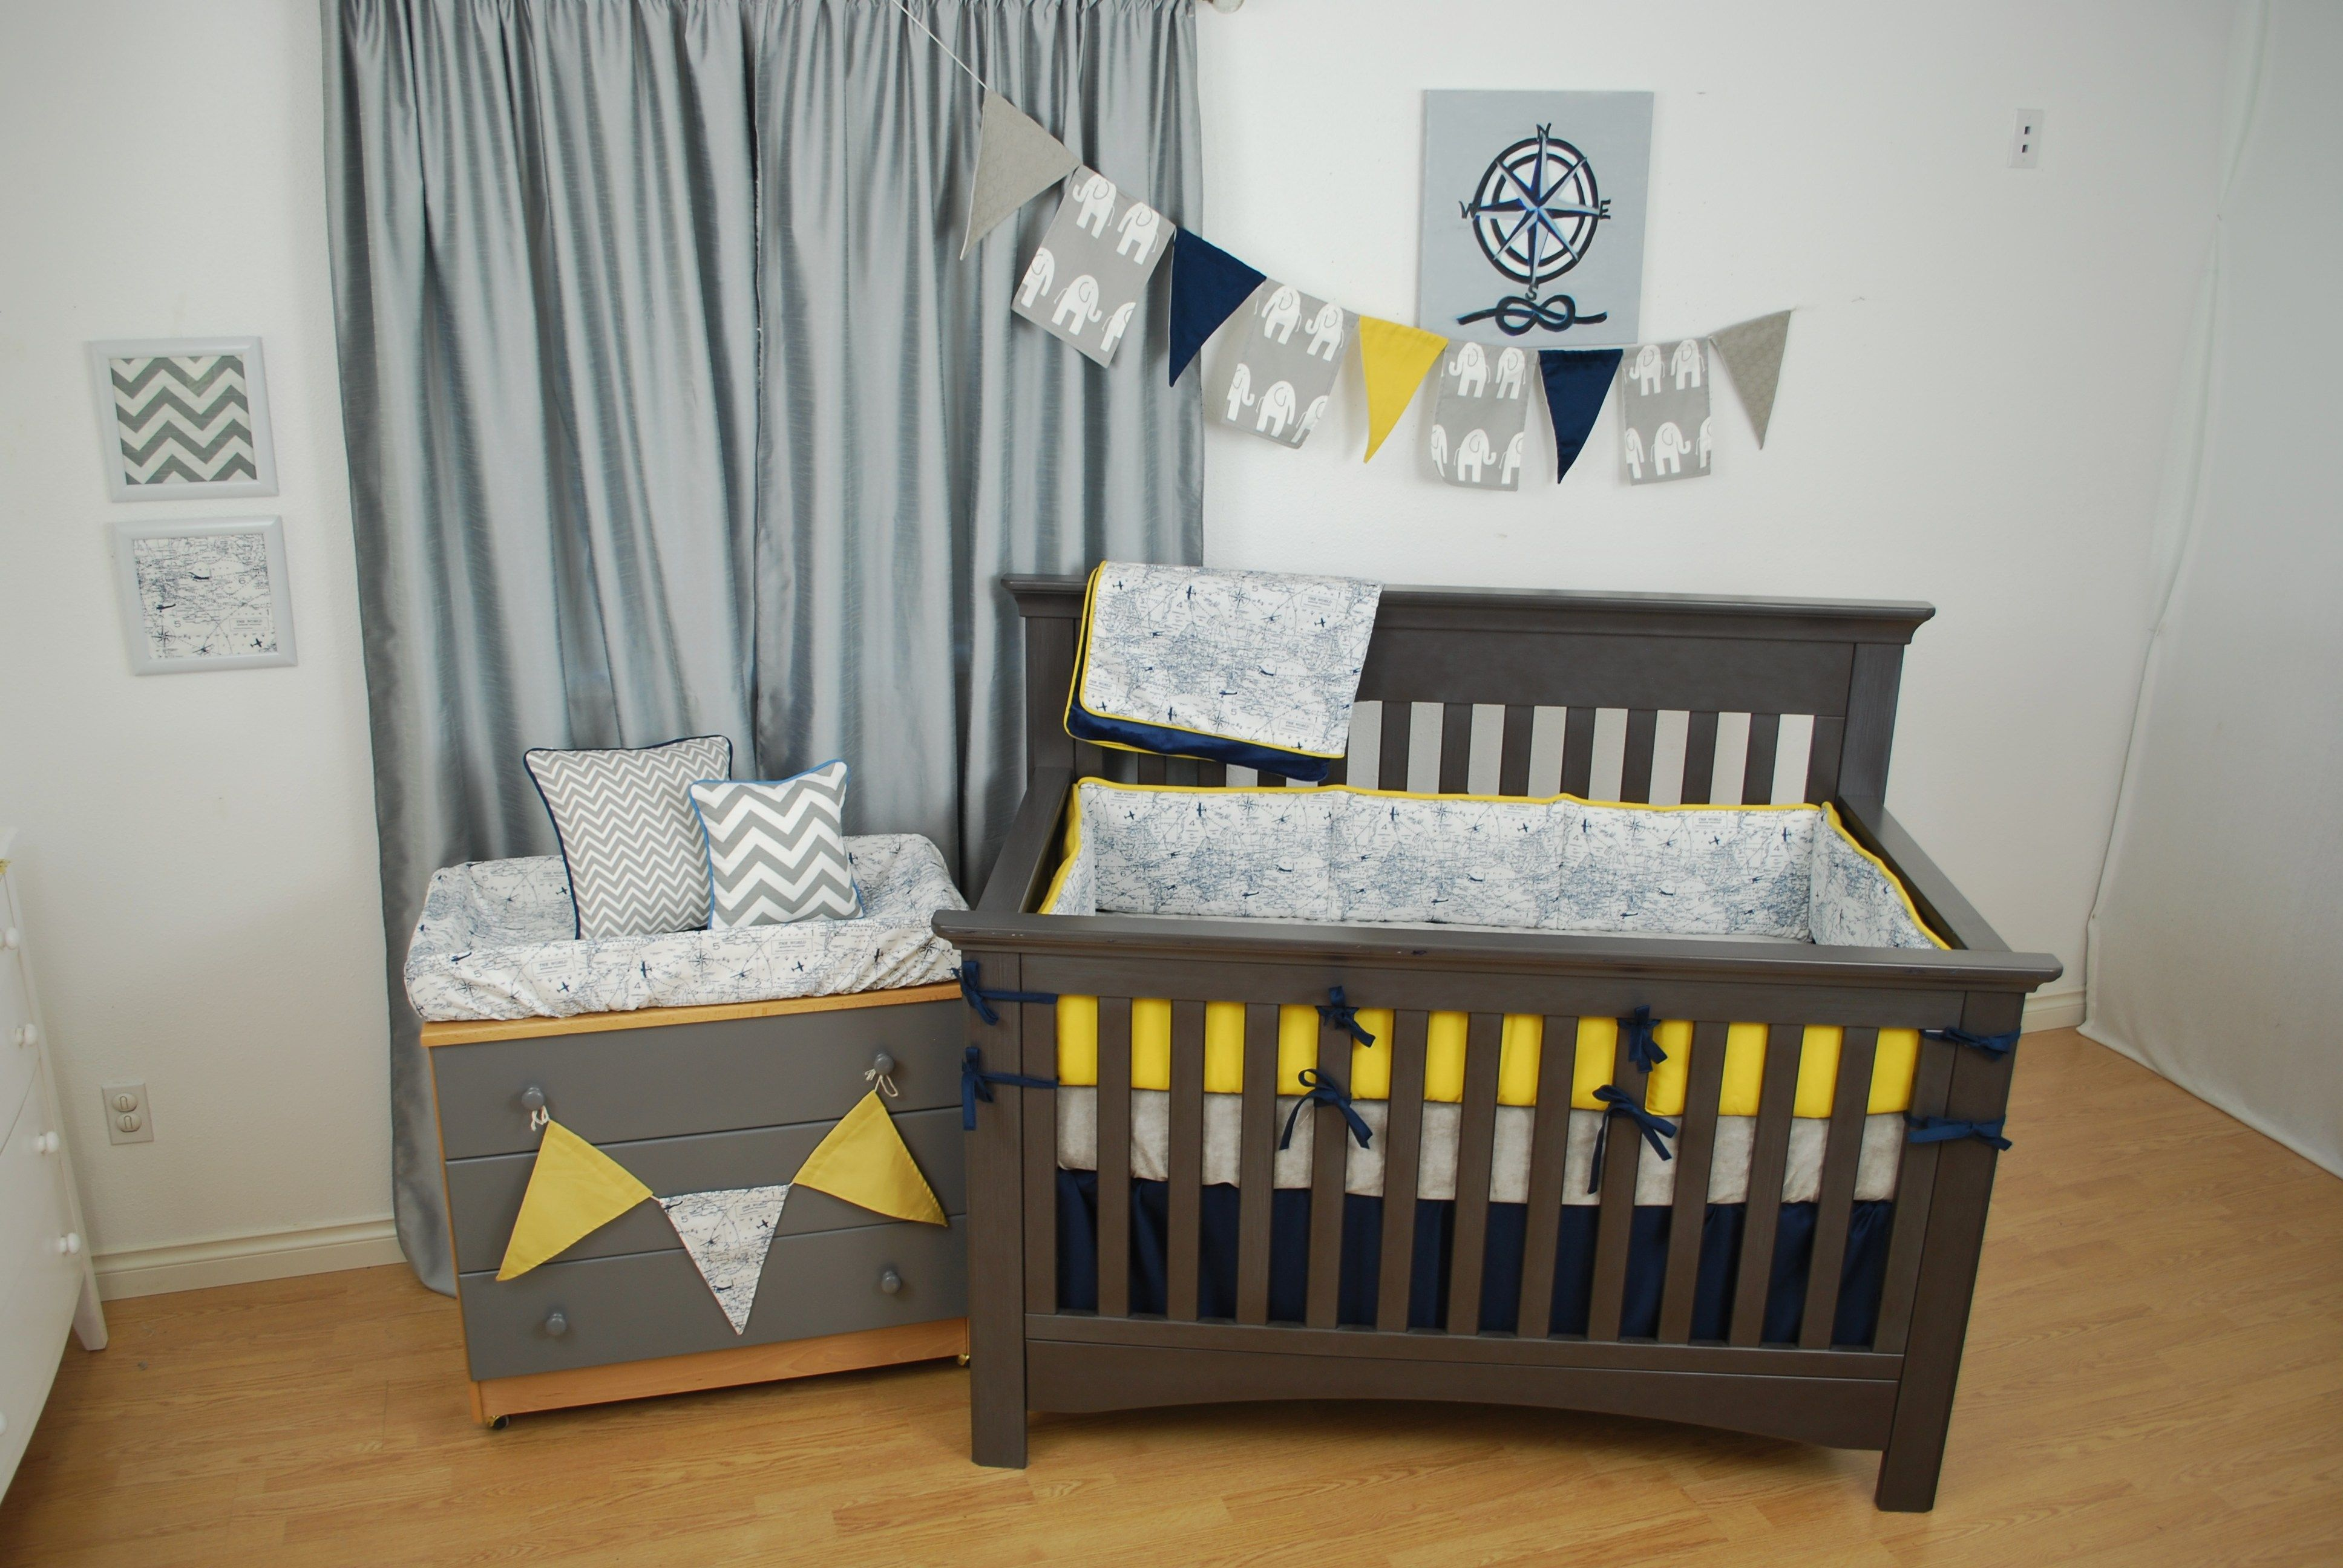 Navy world map crib bedding with bright yellow and grey in the navy world map crib bedding with bright yellow and grey in the nursery gumiabroncs Choice Image